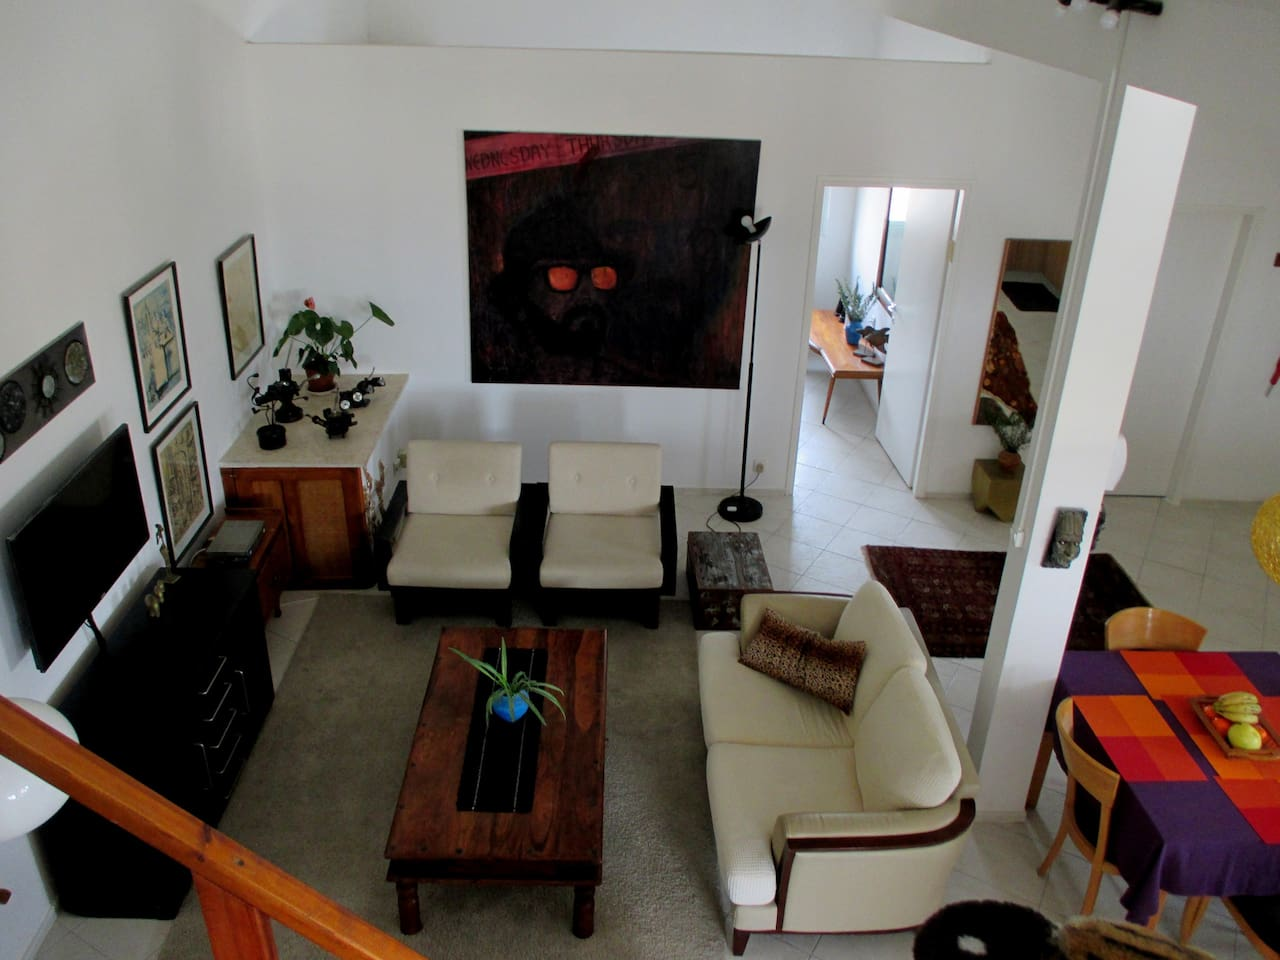 A general view from the gallery to the living area.